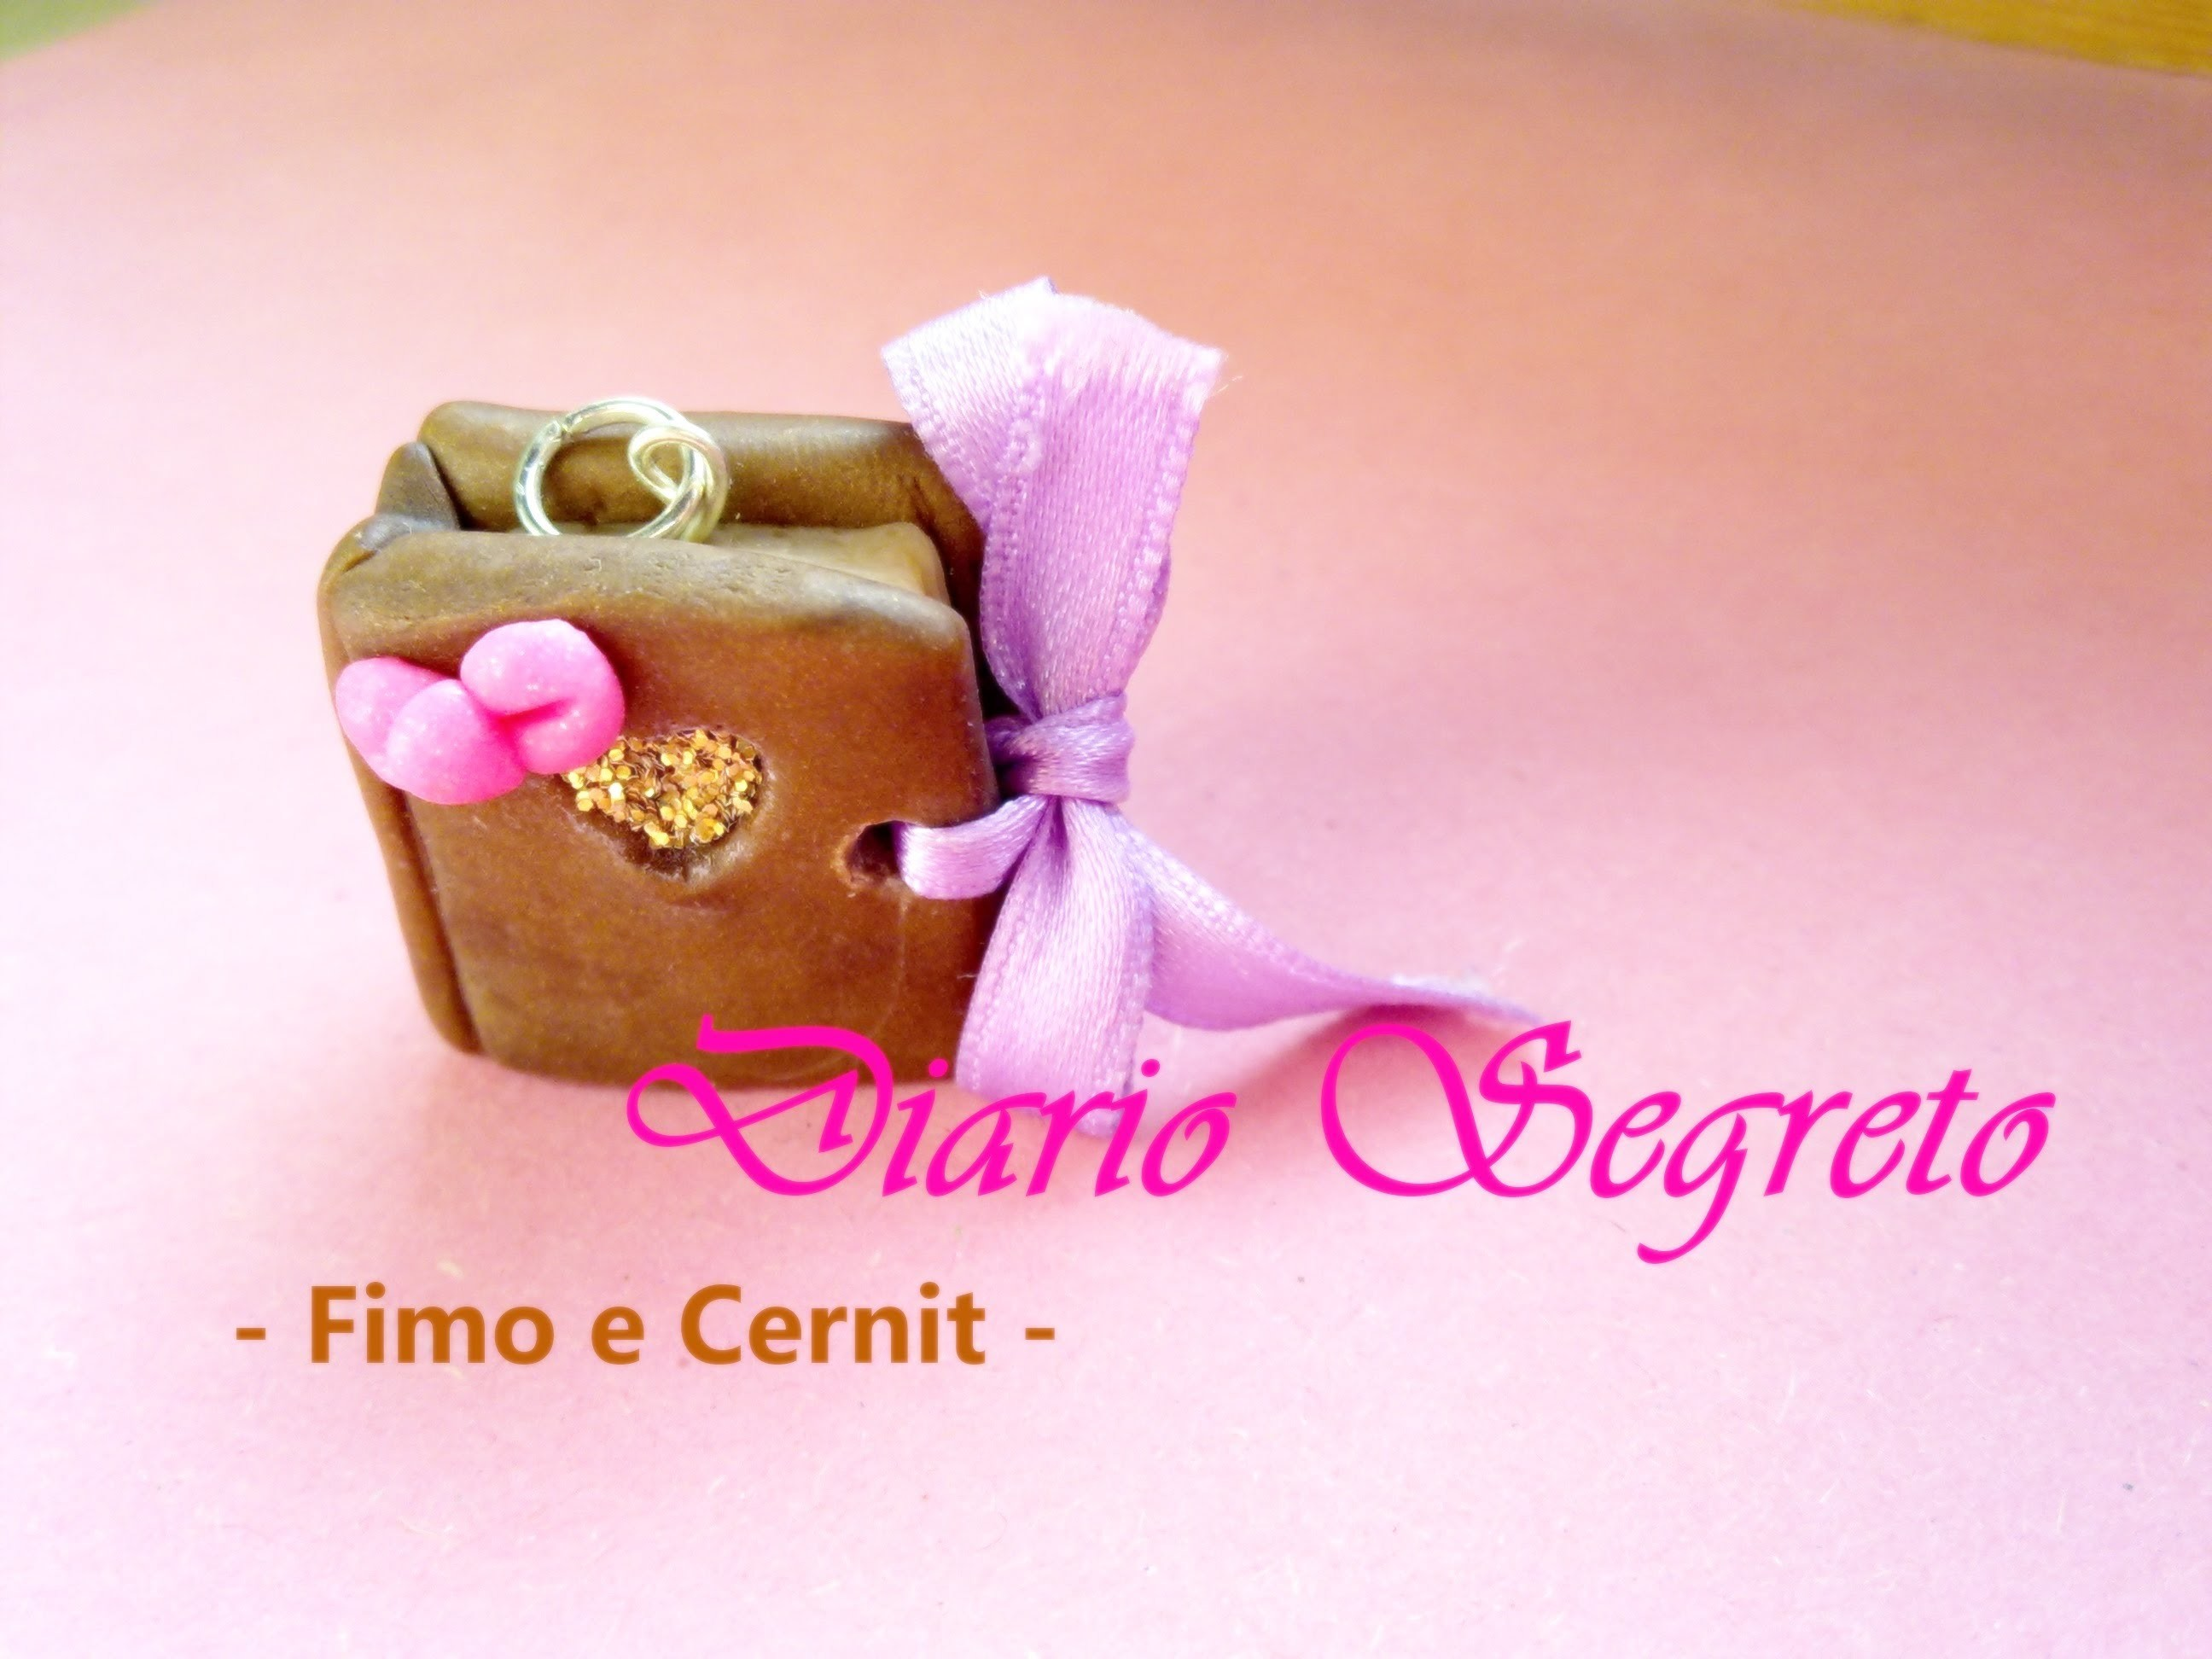 Diario Segreto: Charm in Fimo e Cernit (Secret Diary Charm: Polymer Clay Tutorial) ◦°°◦˚♥